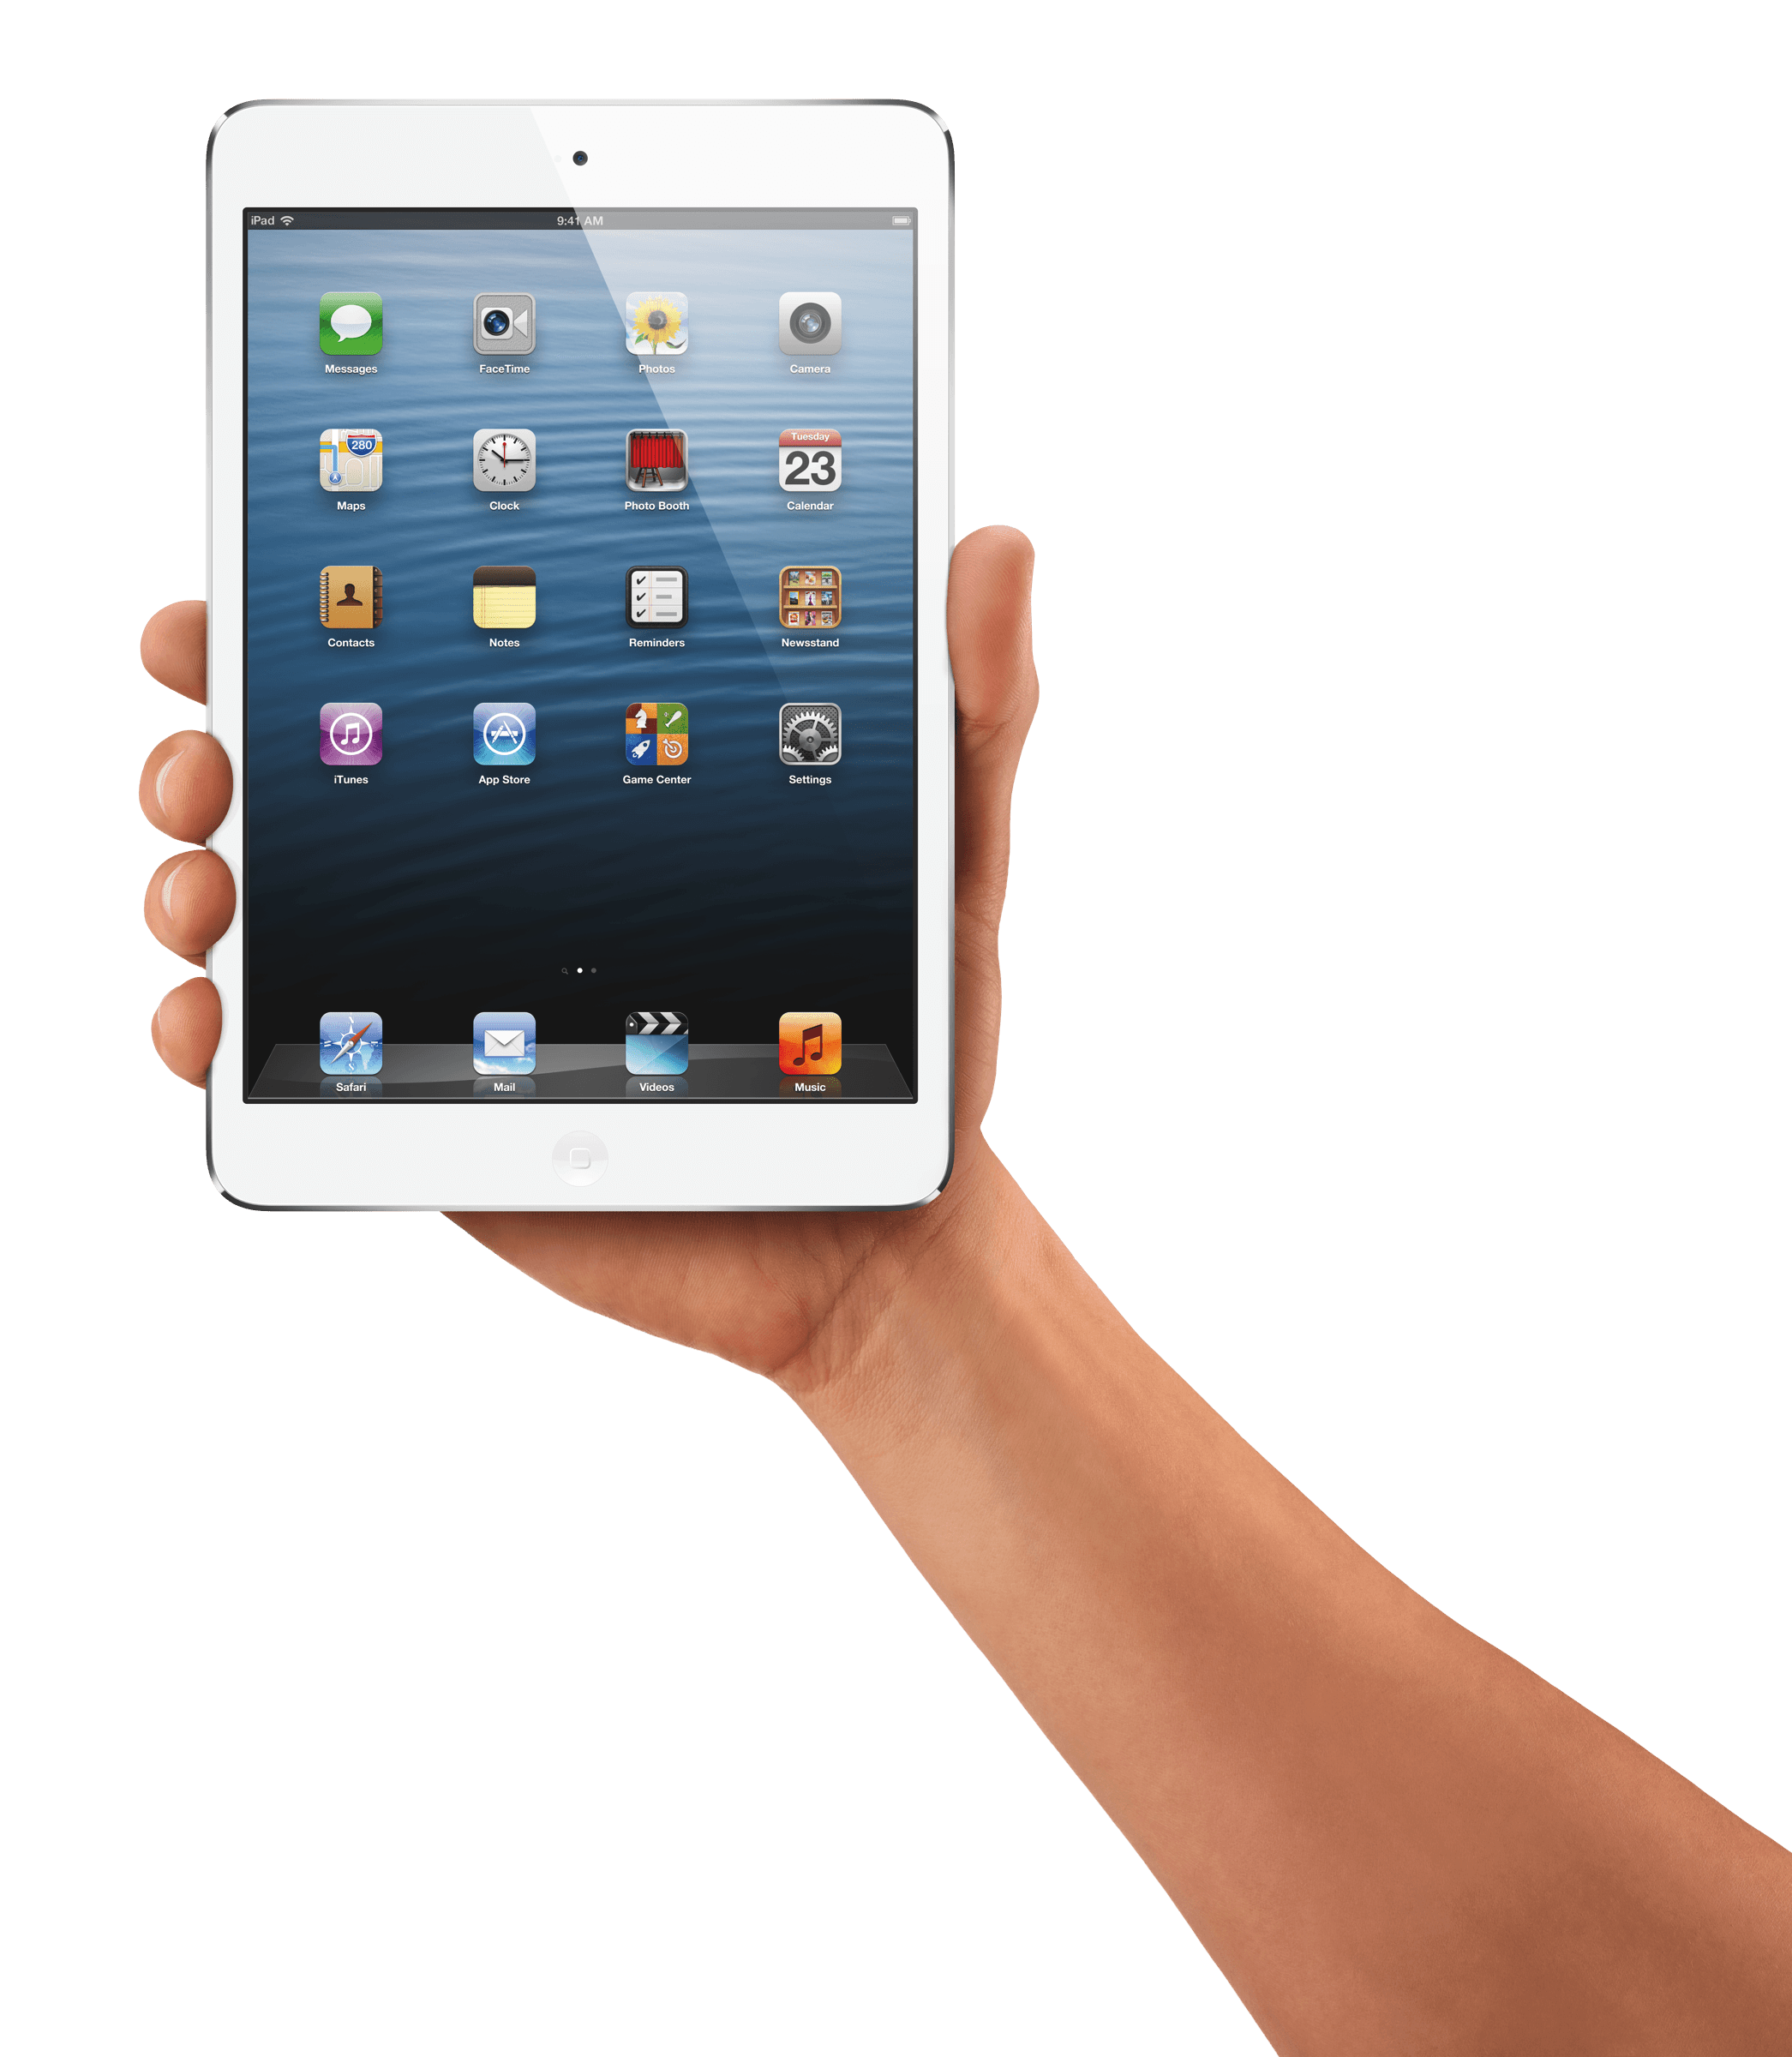 Ipad Hand Png - Hand Holding Ipad Tablet transparent PNG - StickPNG